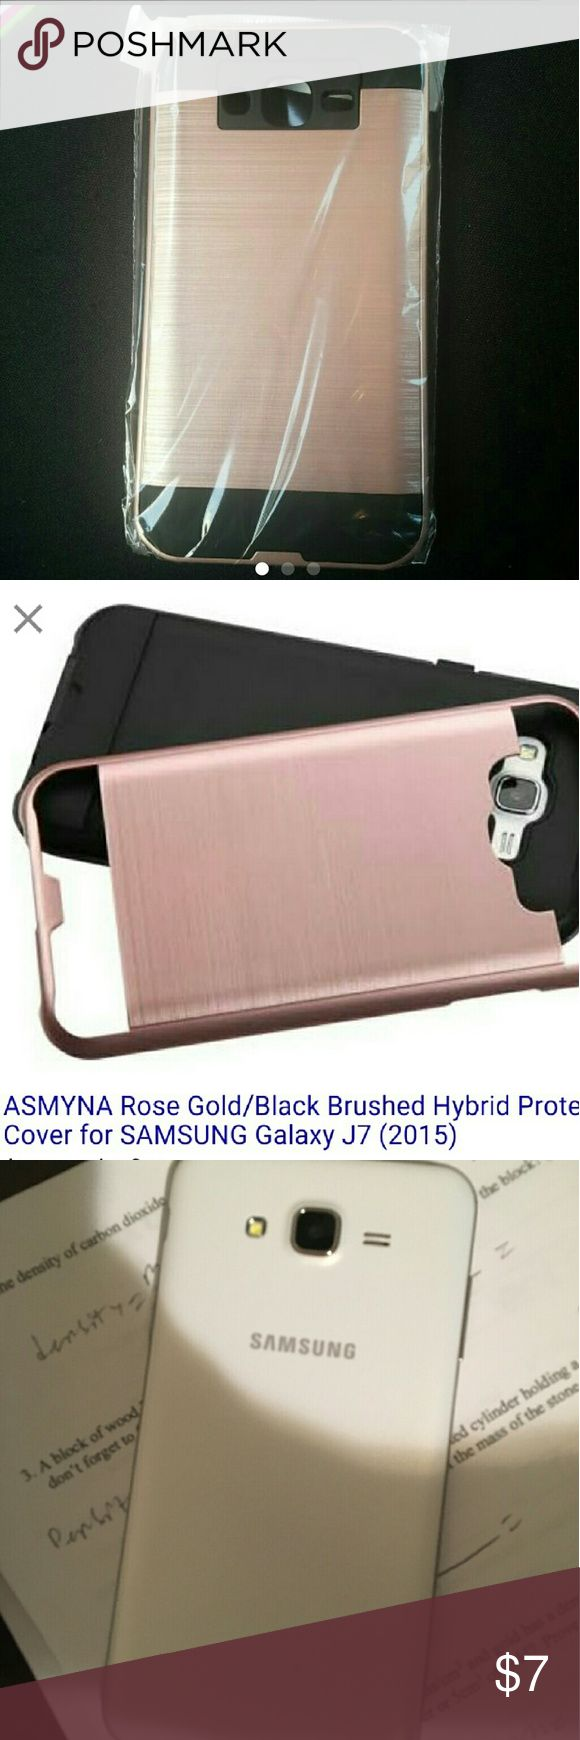 Samsung Galaxy j 7 case Hybrid rose gold cases for Galaxy J7 brand new sorry no free shipping.  2015 phone. 3rd  picture shows the phone style it will fit ( phone not included just for show) samsung  Accessories Phone Cases